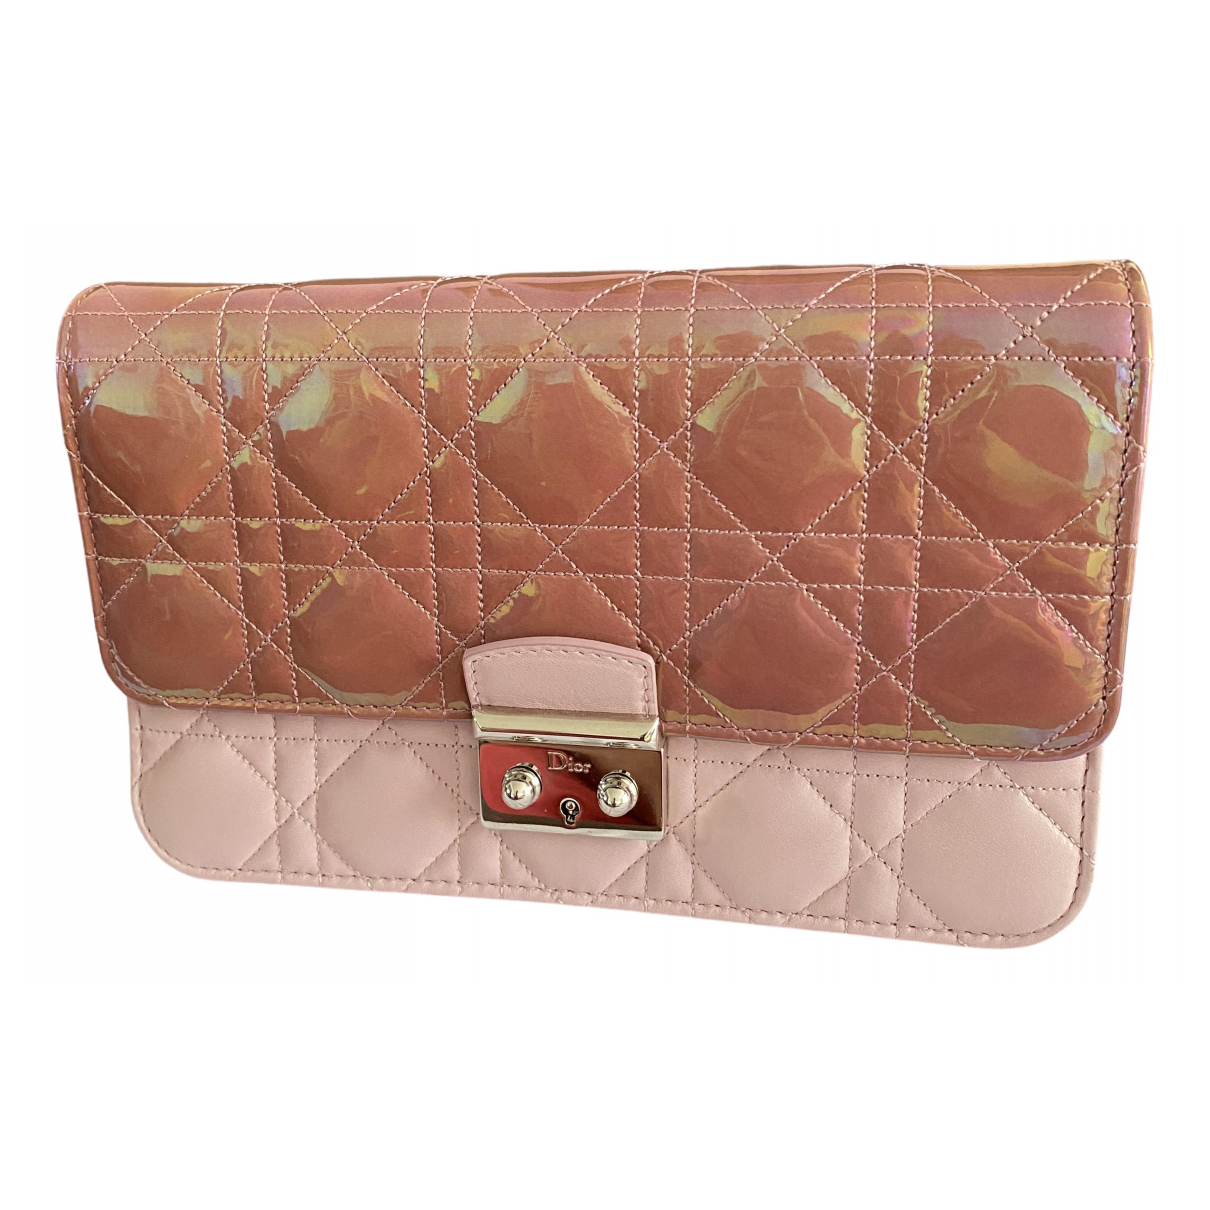 Dior Miss Dior Pink Leather Clutch bag for Women N